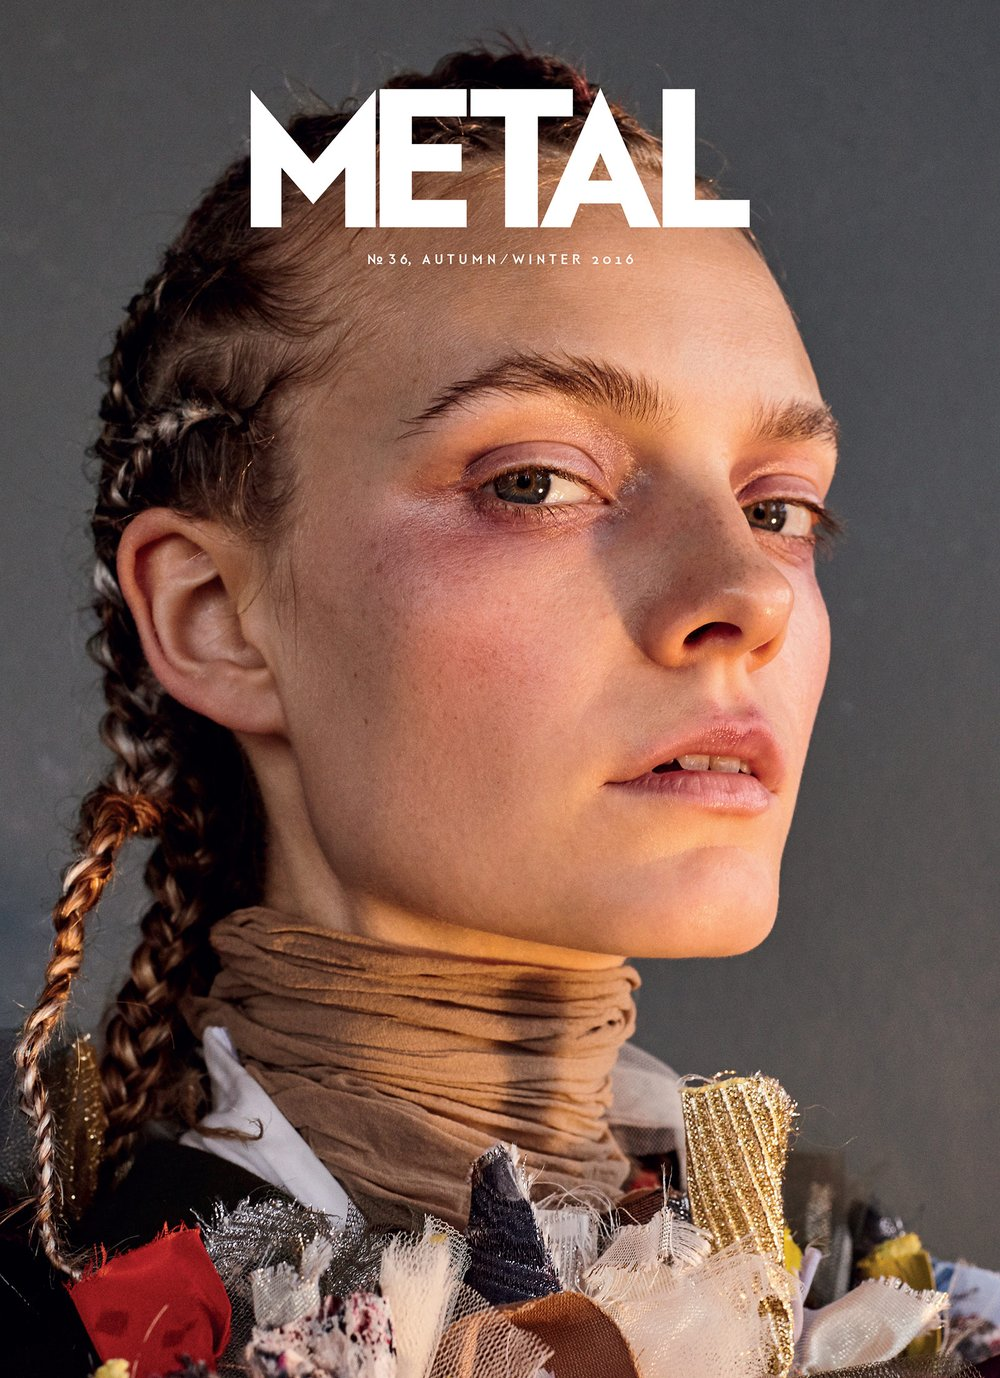 COVER 1 - Imue Smit by Barrie Hullegie wearing Viktor & Rolf